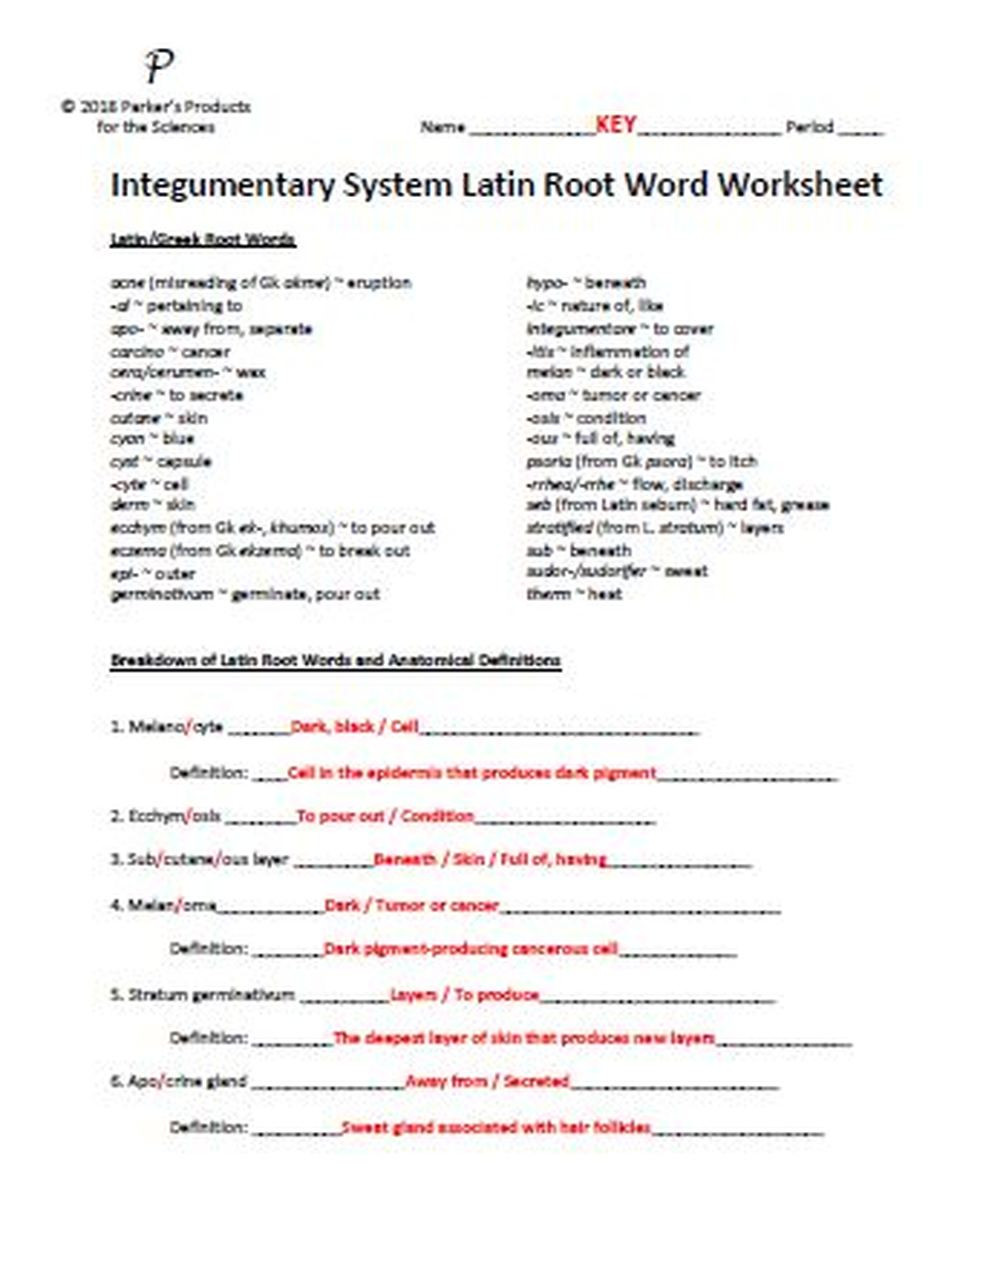 Root Word Worksheets 4th Grade Integumentary System Latin Root Word Worksheet